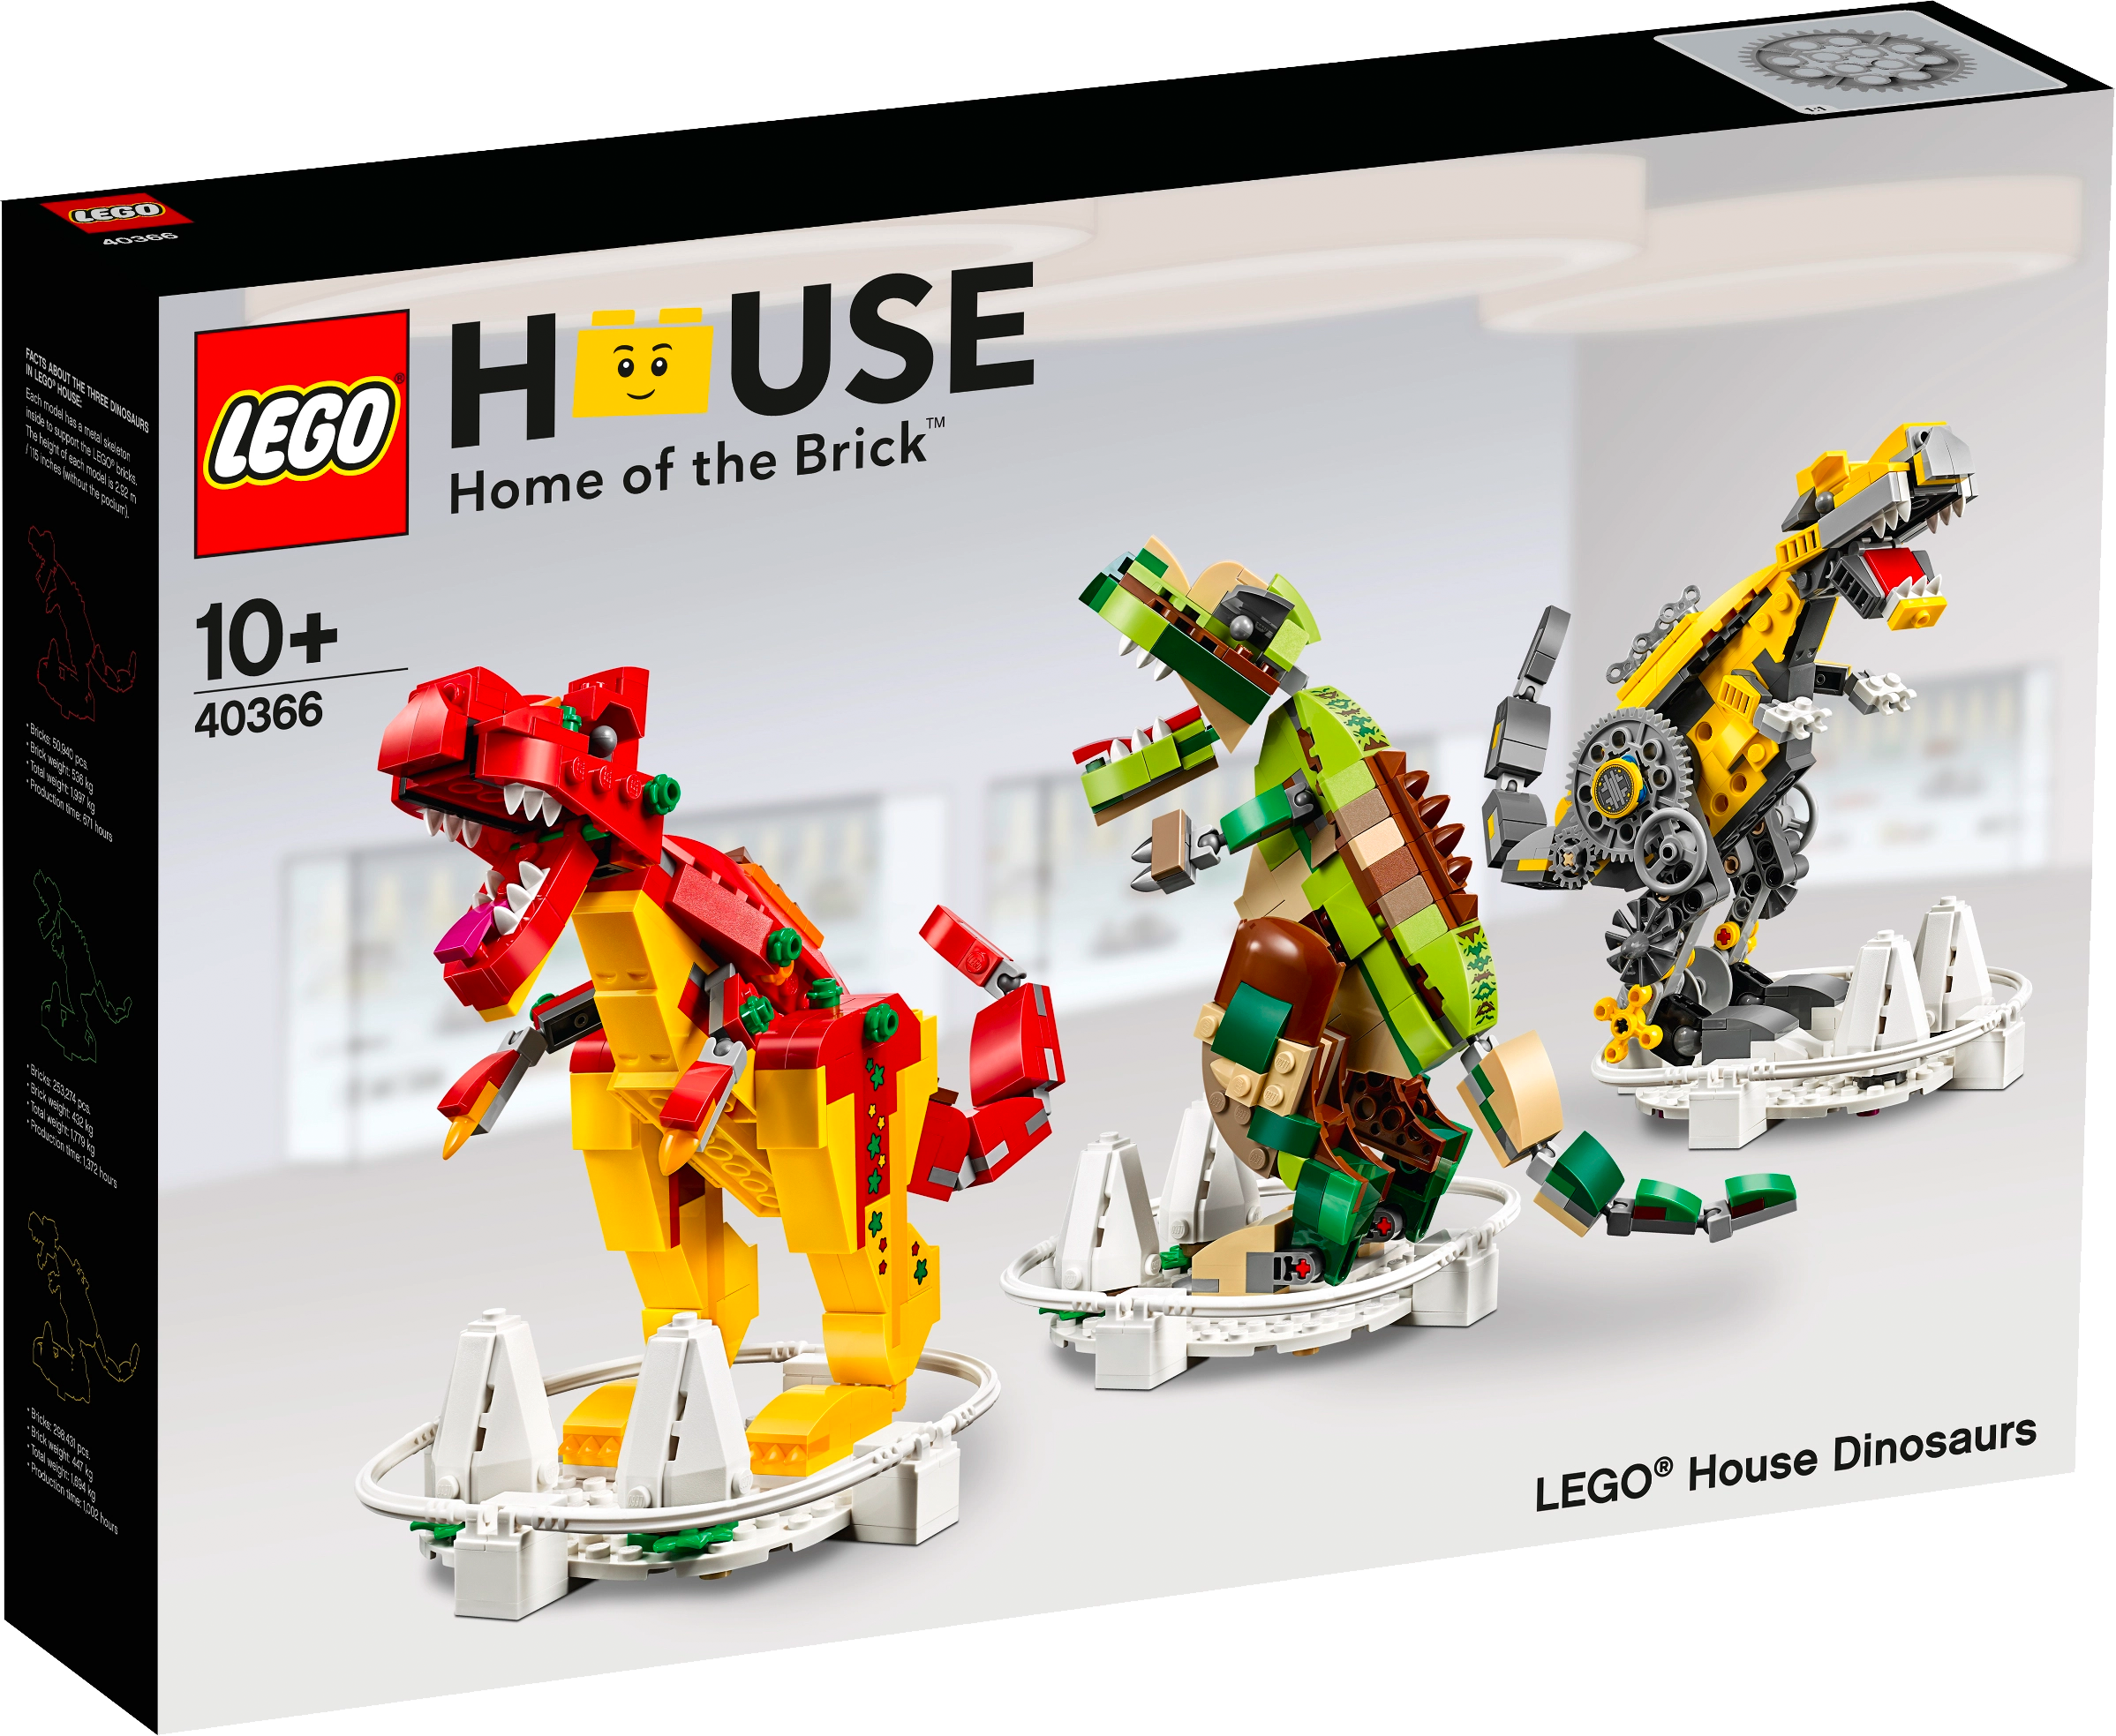 House Dinosaurs